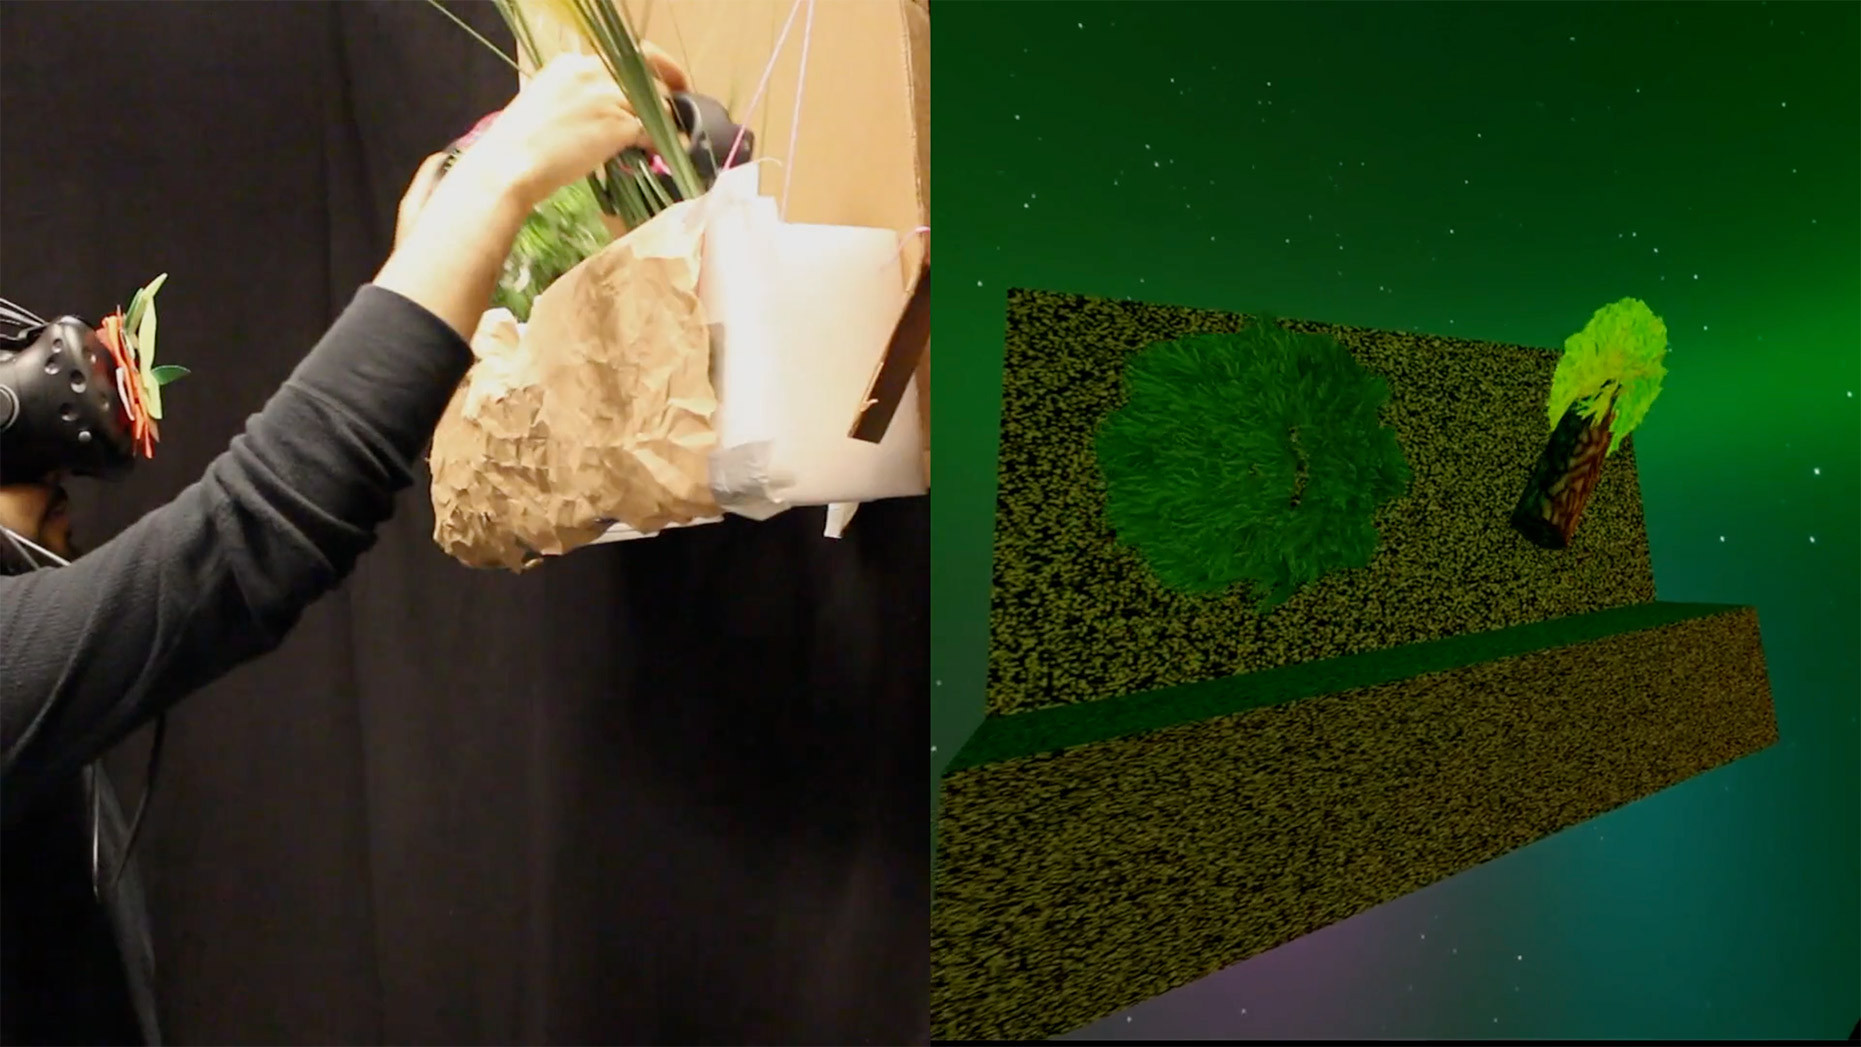 Person using VR headset and interacting with physical object like a tree, with screenshot of VR experience beside it.